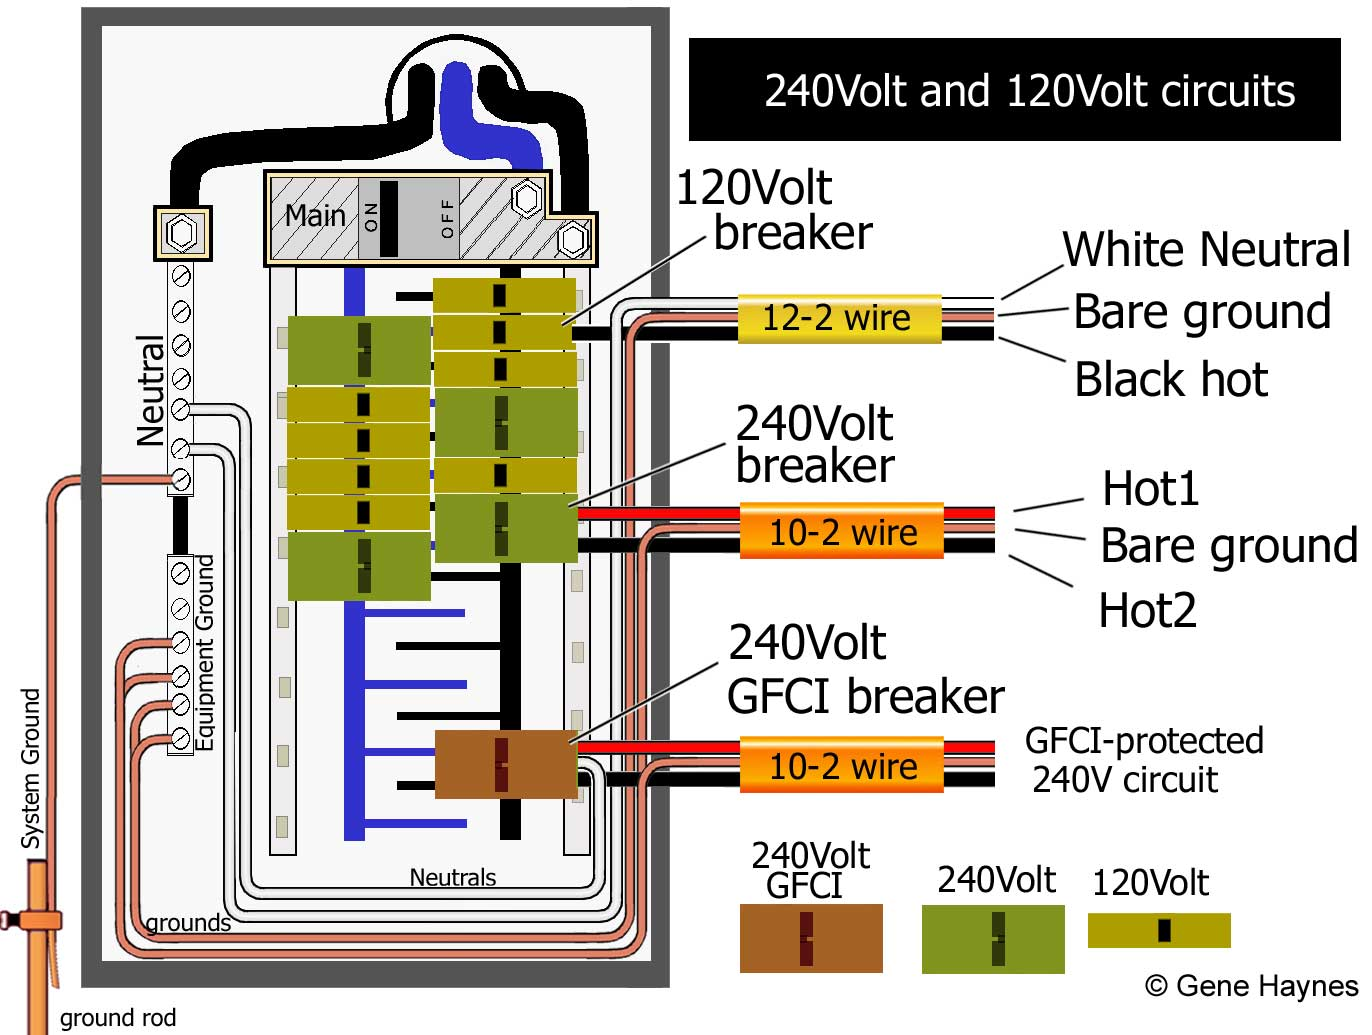 hight resolution of larger image how to wire 2 pole 240volt gfci circuit breaker illustration shows 2 pole 208 240volt gfci the ordinary 240volt breaker does not have white